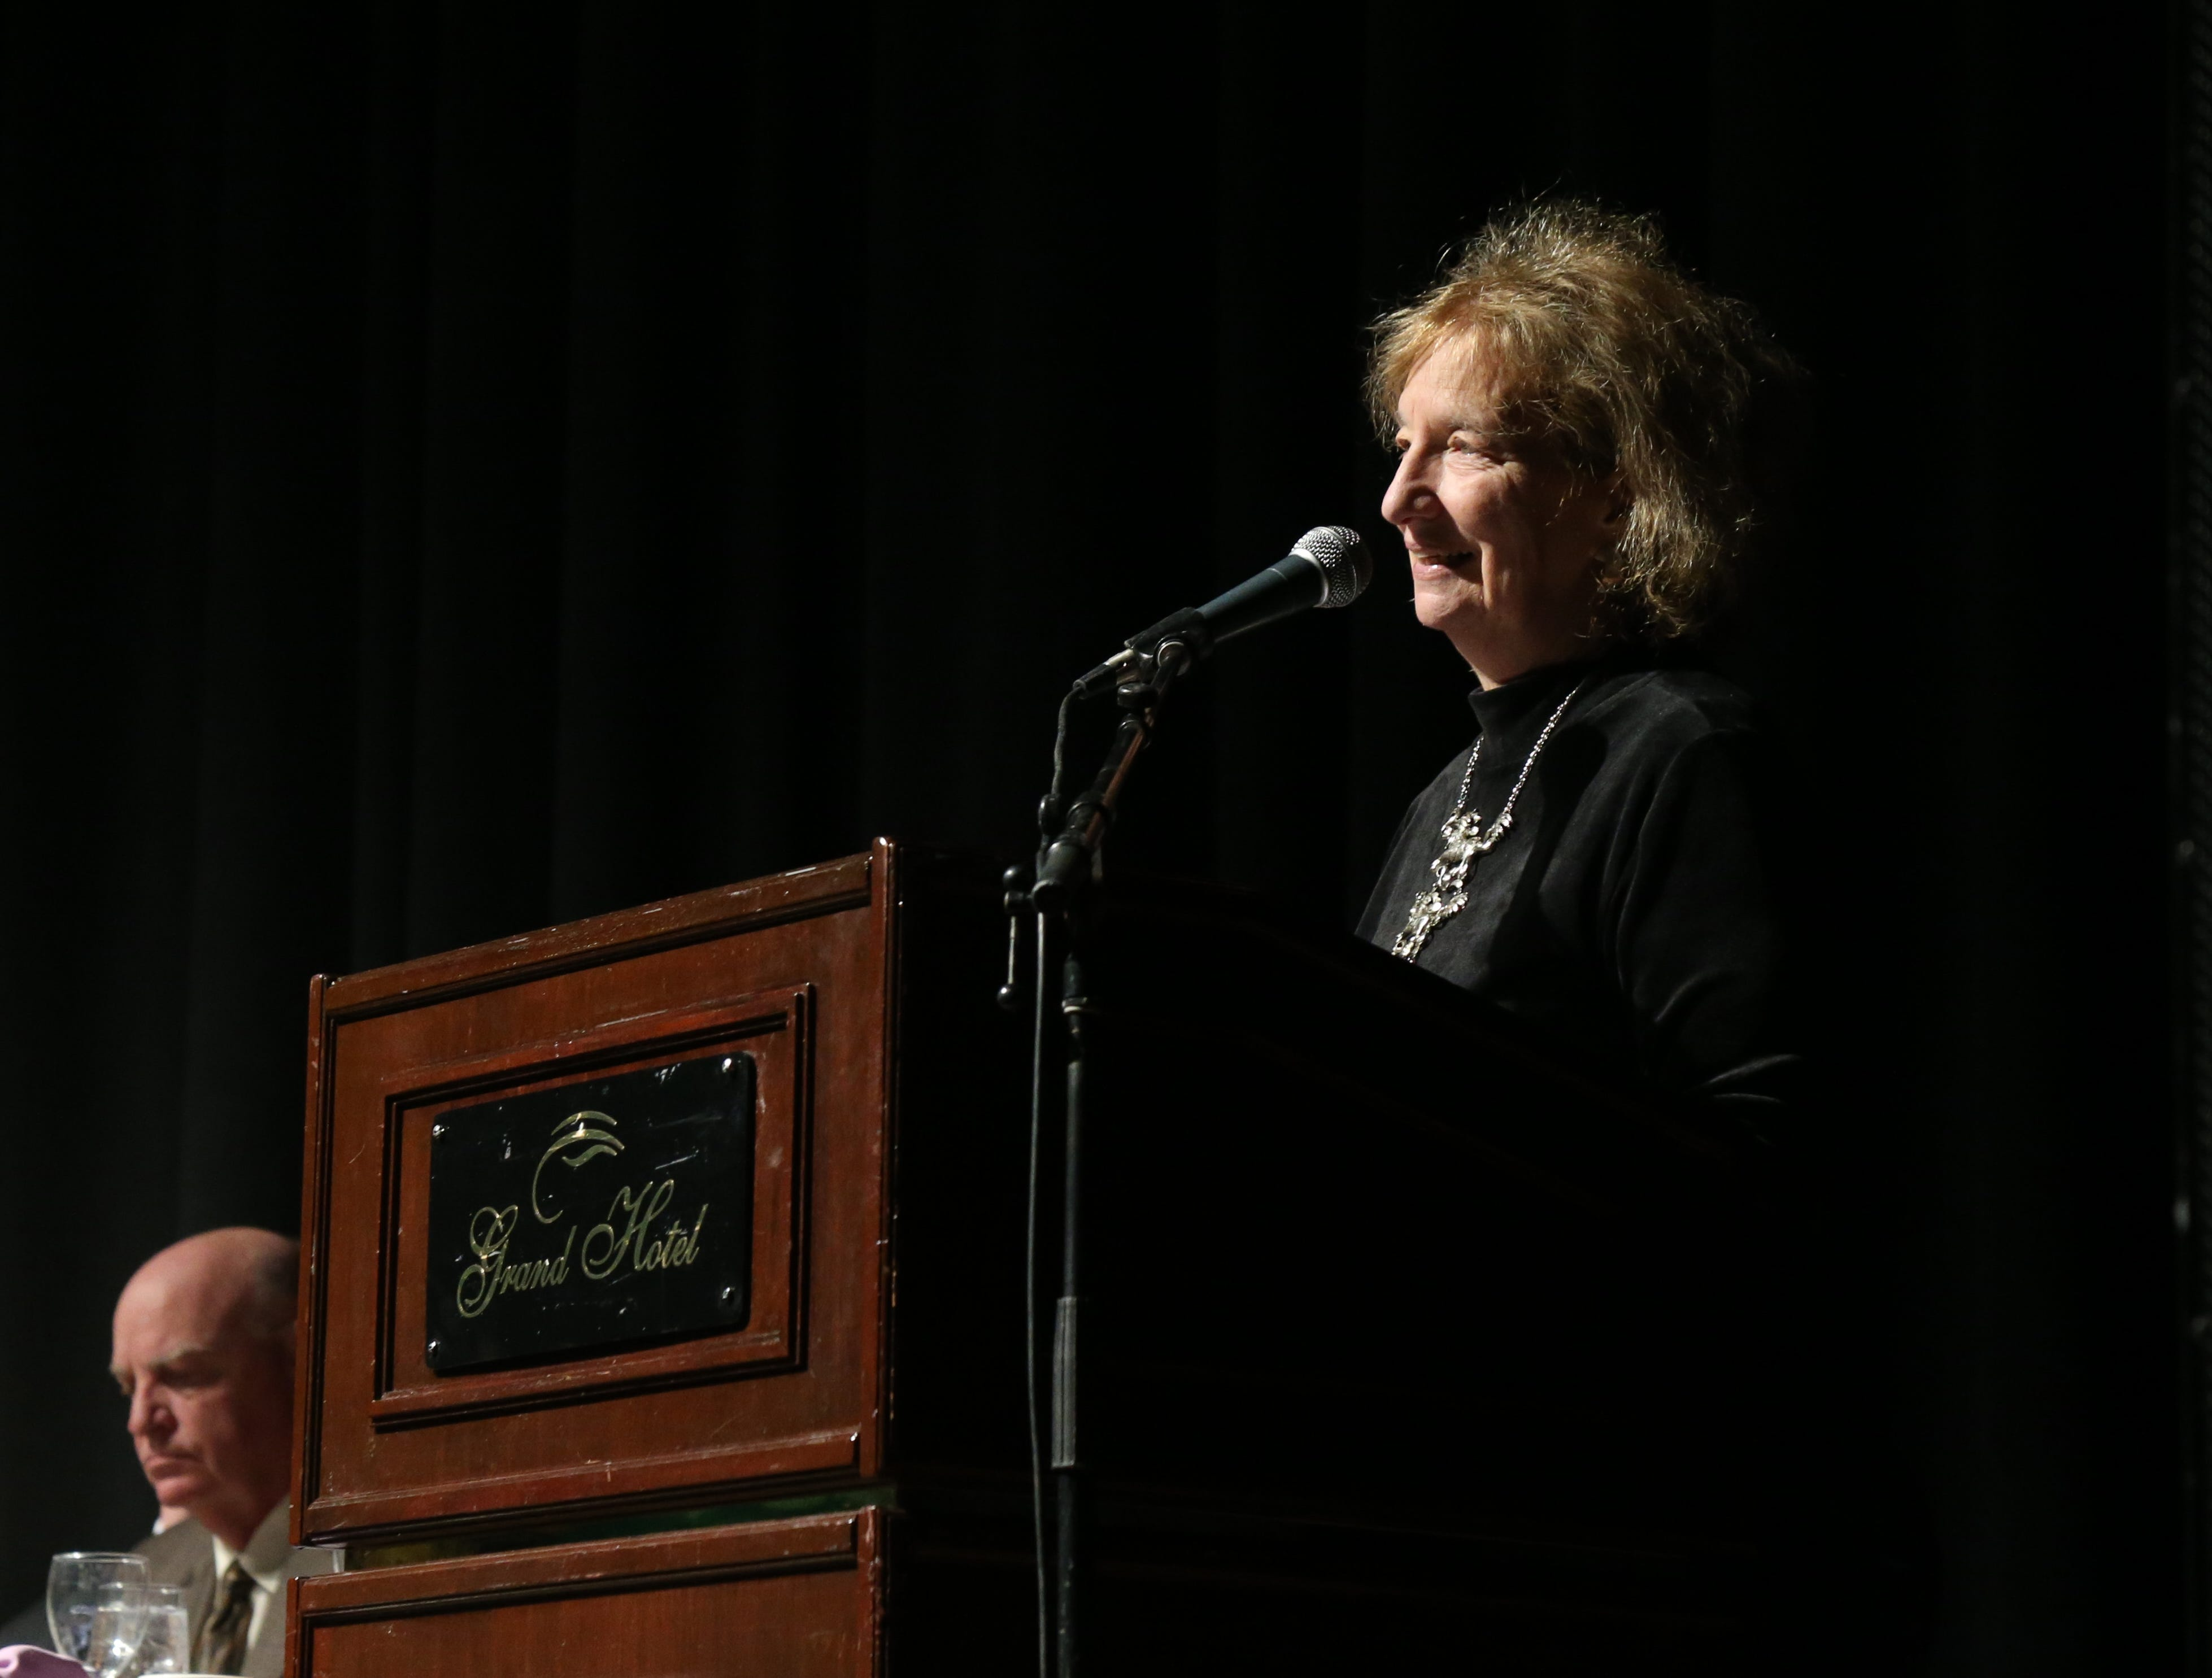 Betsy Kopstein Stuts, president of the board of directors at the Catharine Street Community Center makes opening remarks during the Martin Luther King Jr. Breakfast in the City of Poughkeepsie on January 25, 2019.